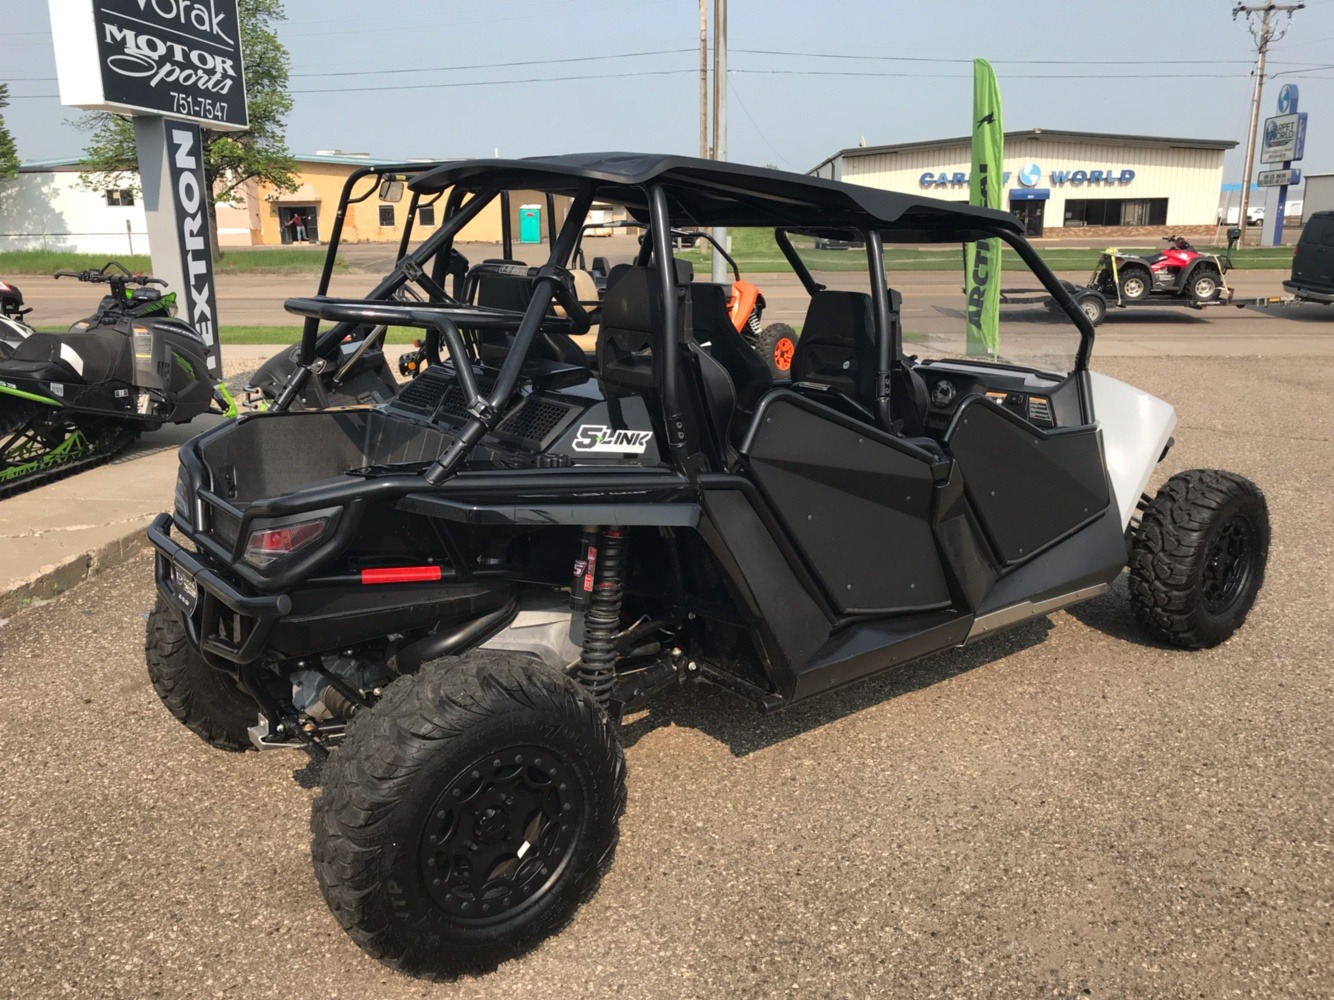 2018 Arctic Cat Wildcat 4X LTD in Bismarck, North Dakota - Photo 4